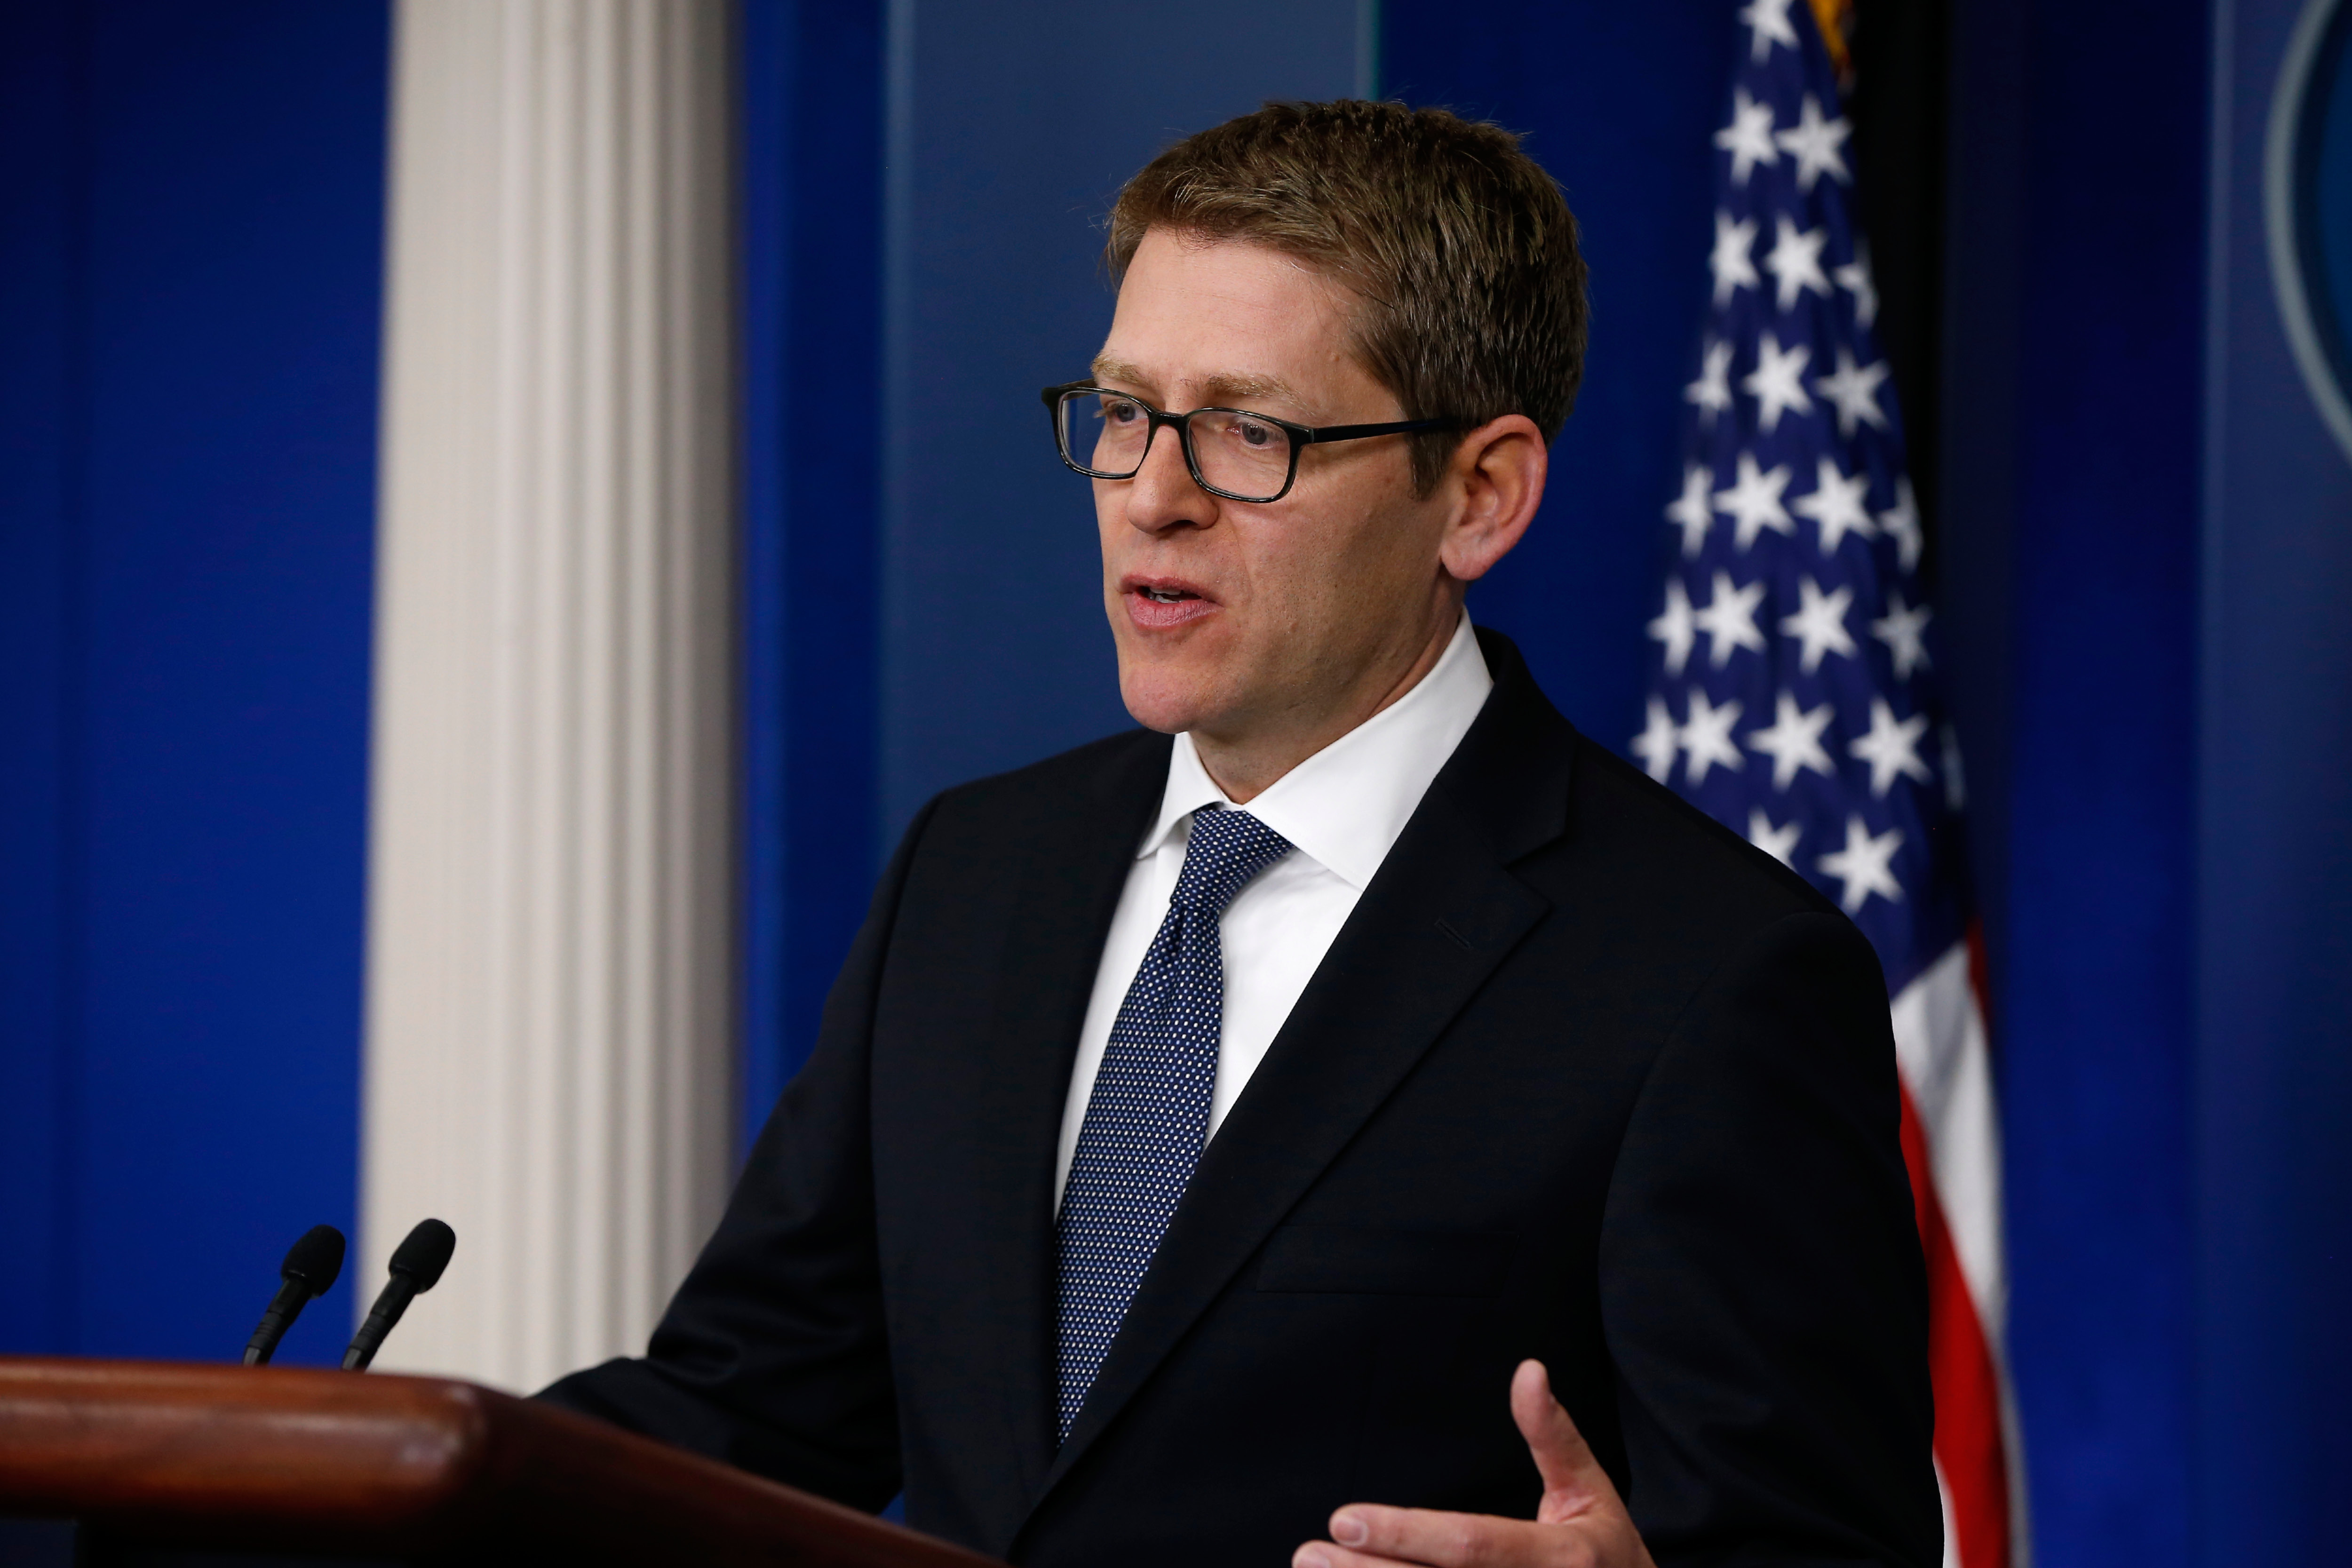 White House press secretary Jay Carney speaks to reporters at the daily press briefing, Friday, April 11, 2014, at the White House in Washington. The US, in a rare diplomatic rebuke, will not grant a visa to Tehran